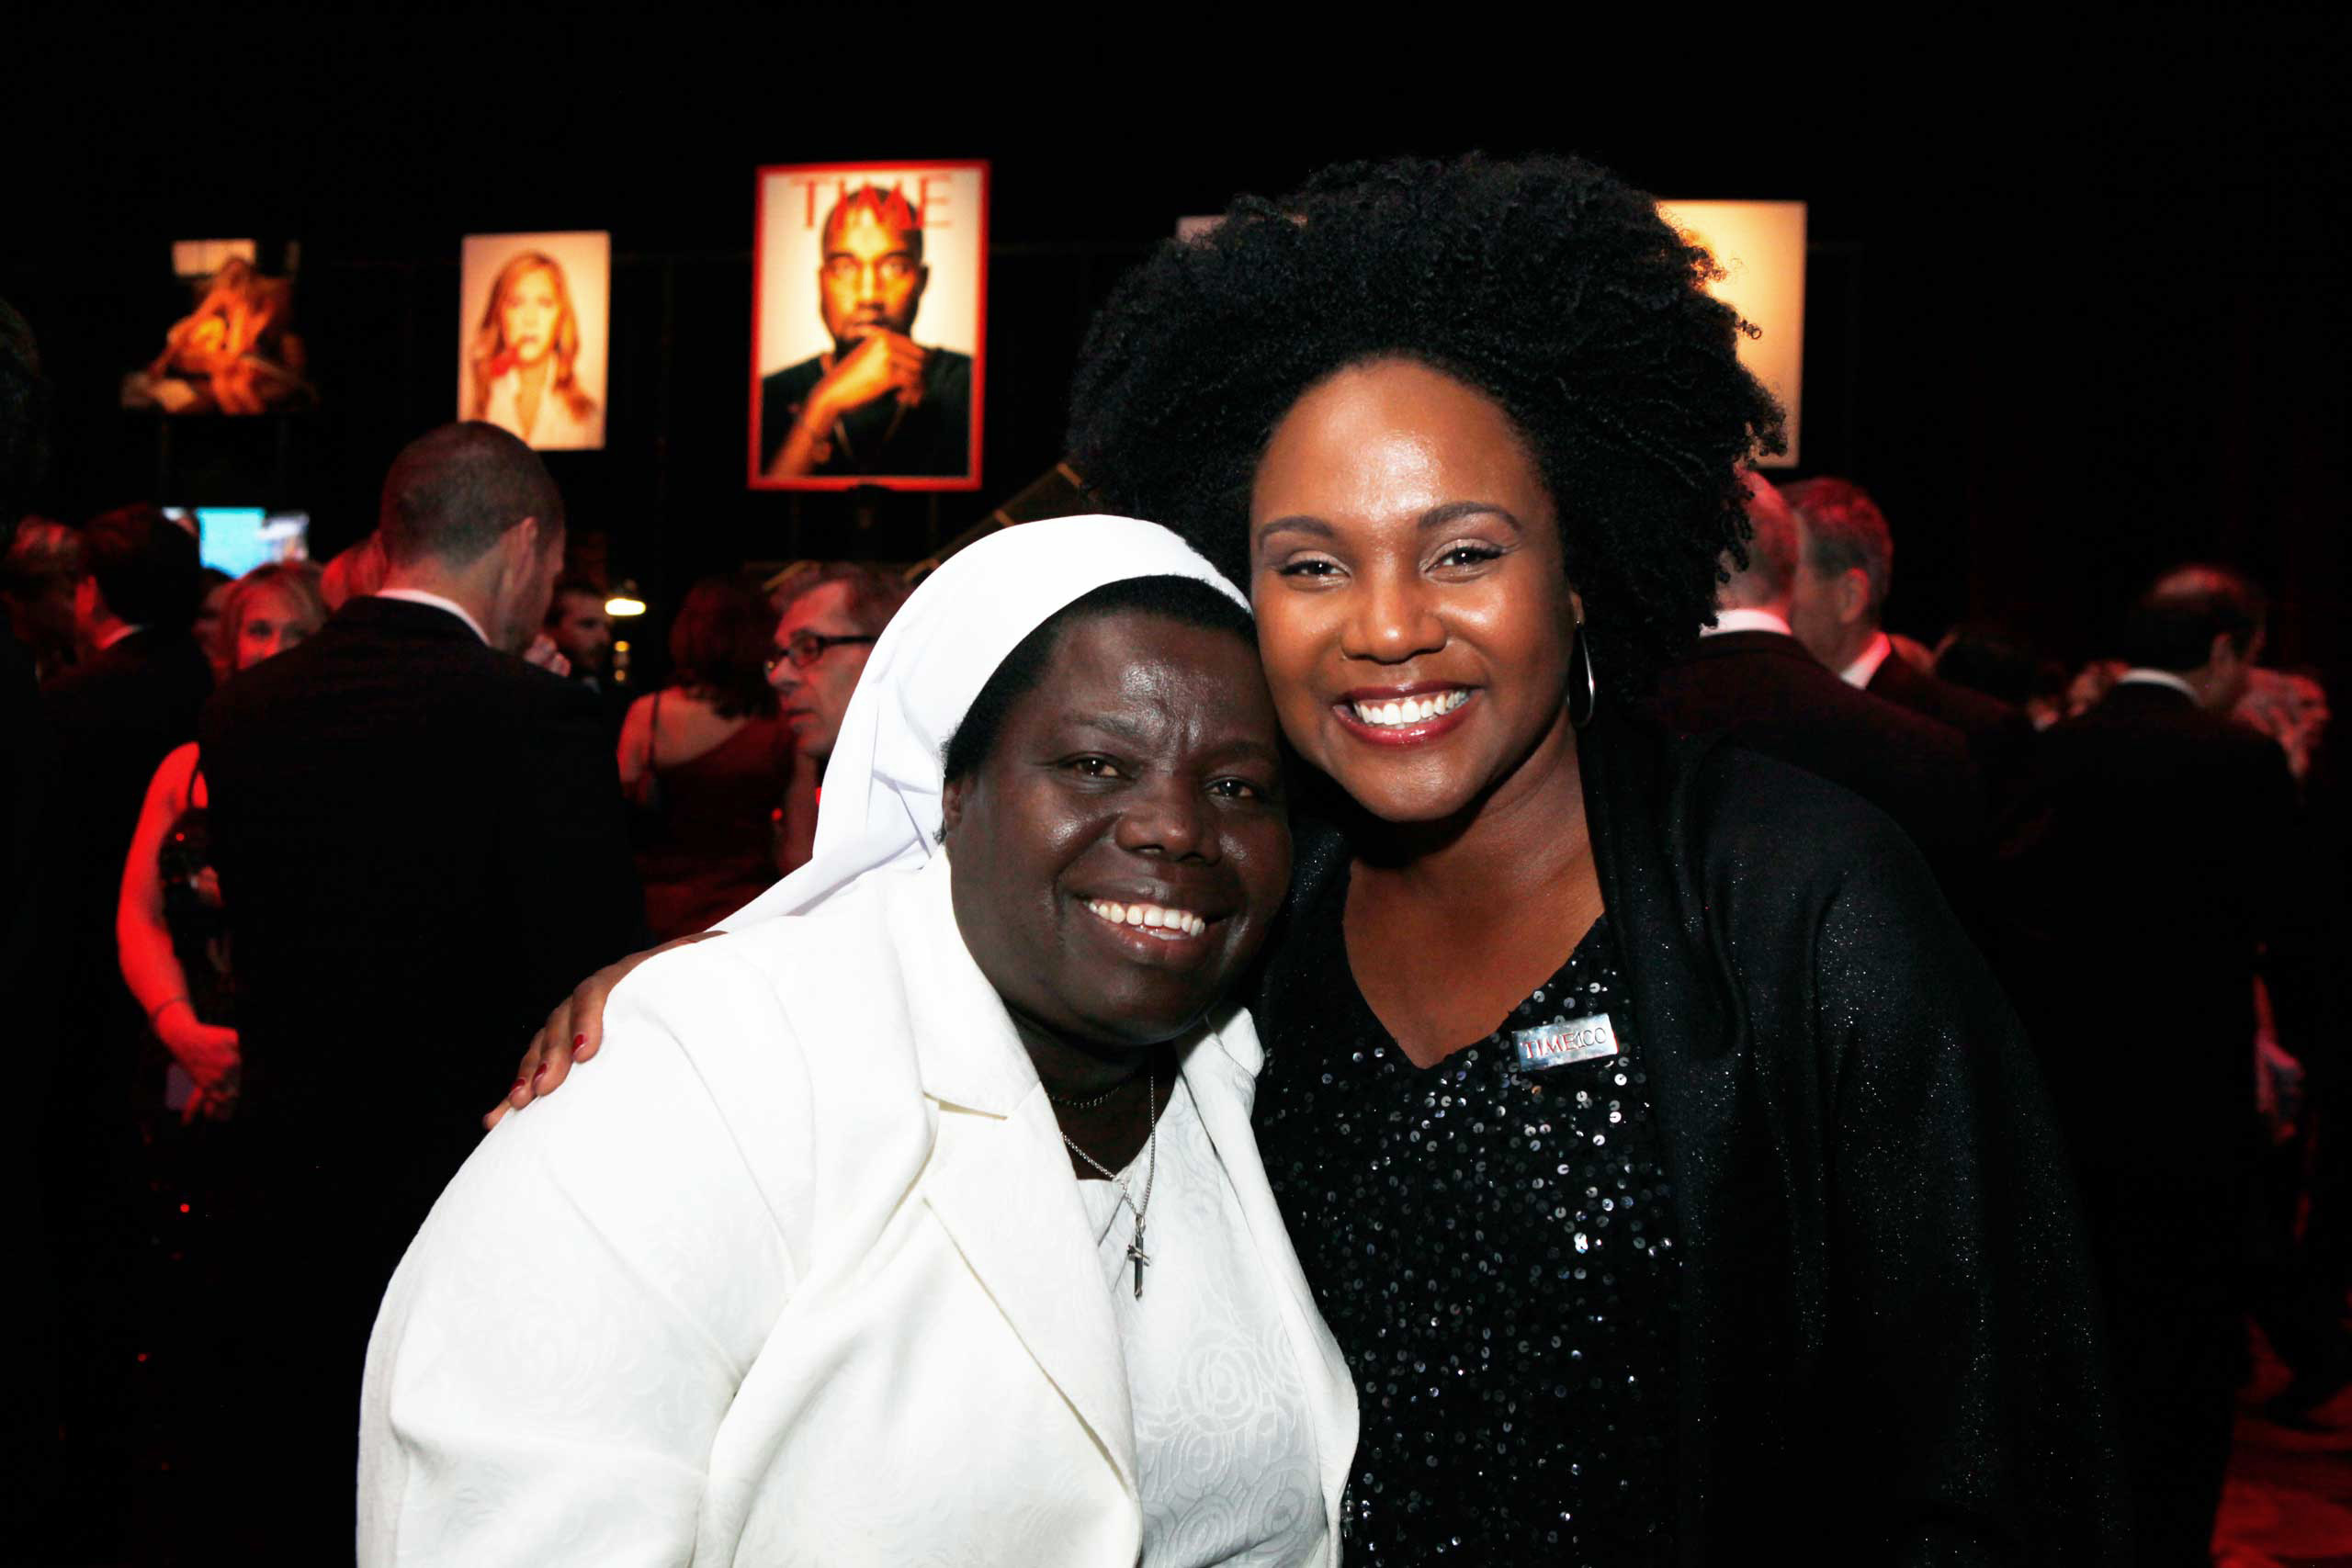 Sister Rosemary Nyirumbe and Kira Orange-Jones attend the TIME 100 Gala at Jazz at Lincoln Center in New York, NY, on Apr. 21, 2015.